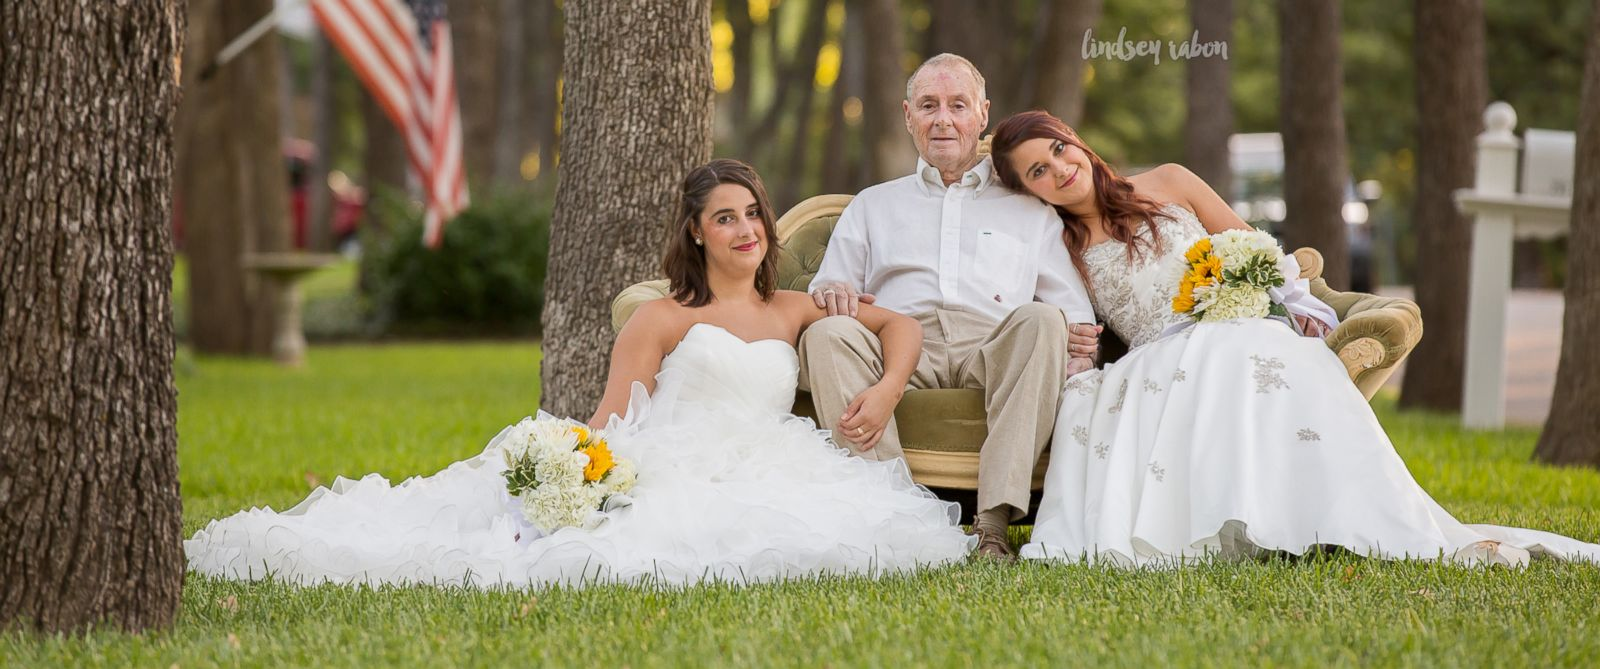 Image result for Twin sisters Sarah and Becca Duncan aren't engaged, but they decided to take wedding photos with their father